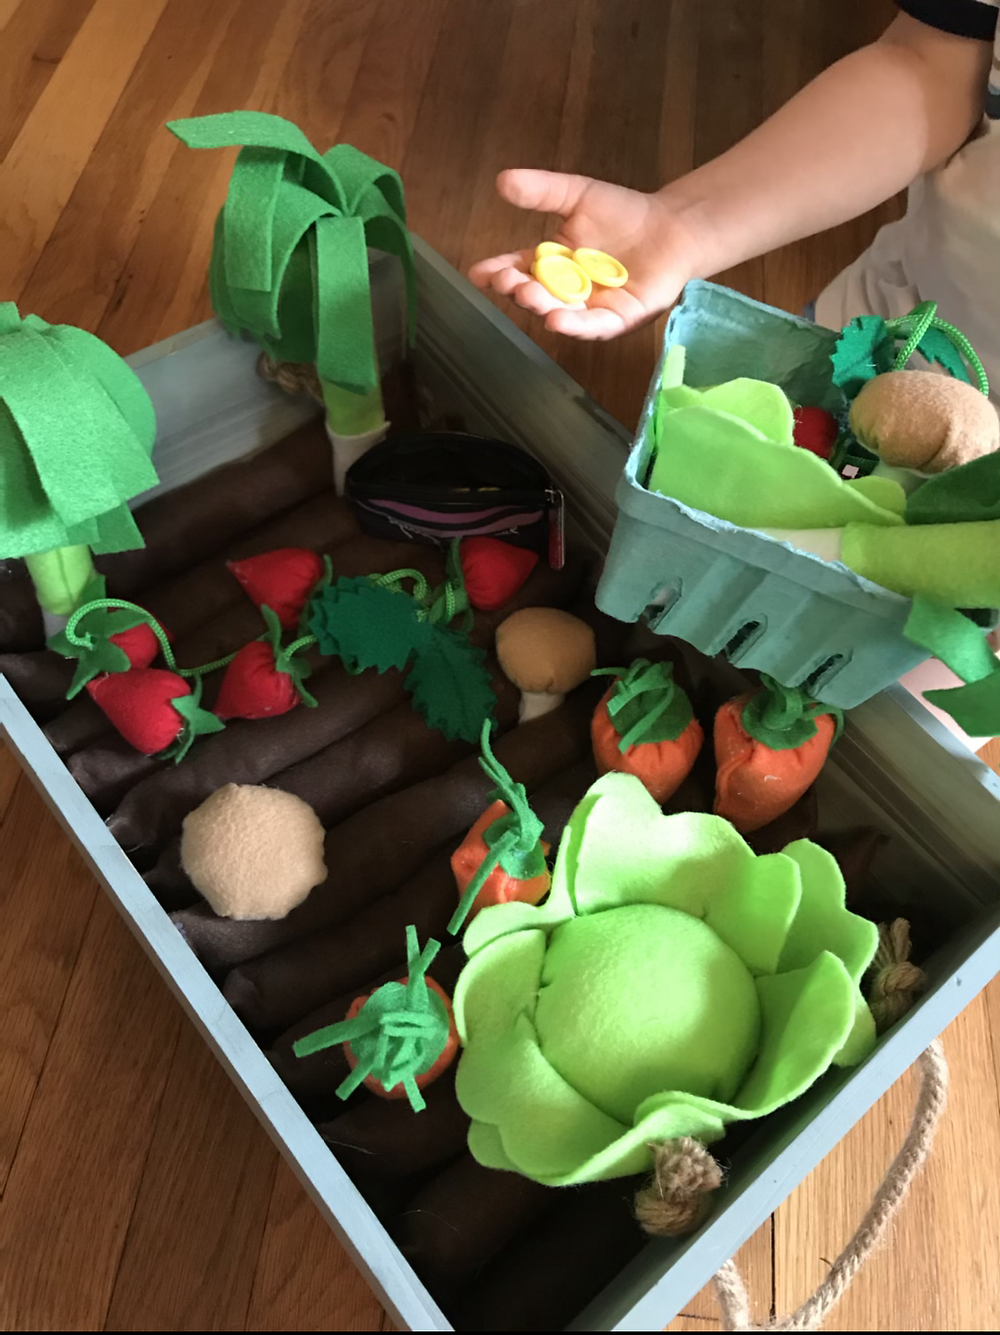 Play time in the garden (real or made out of felt)